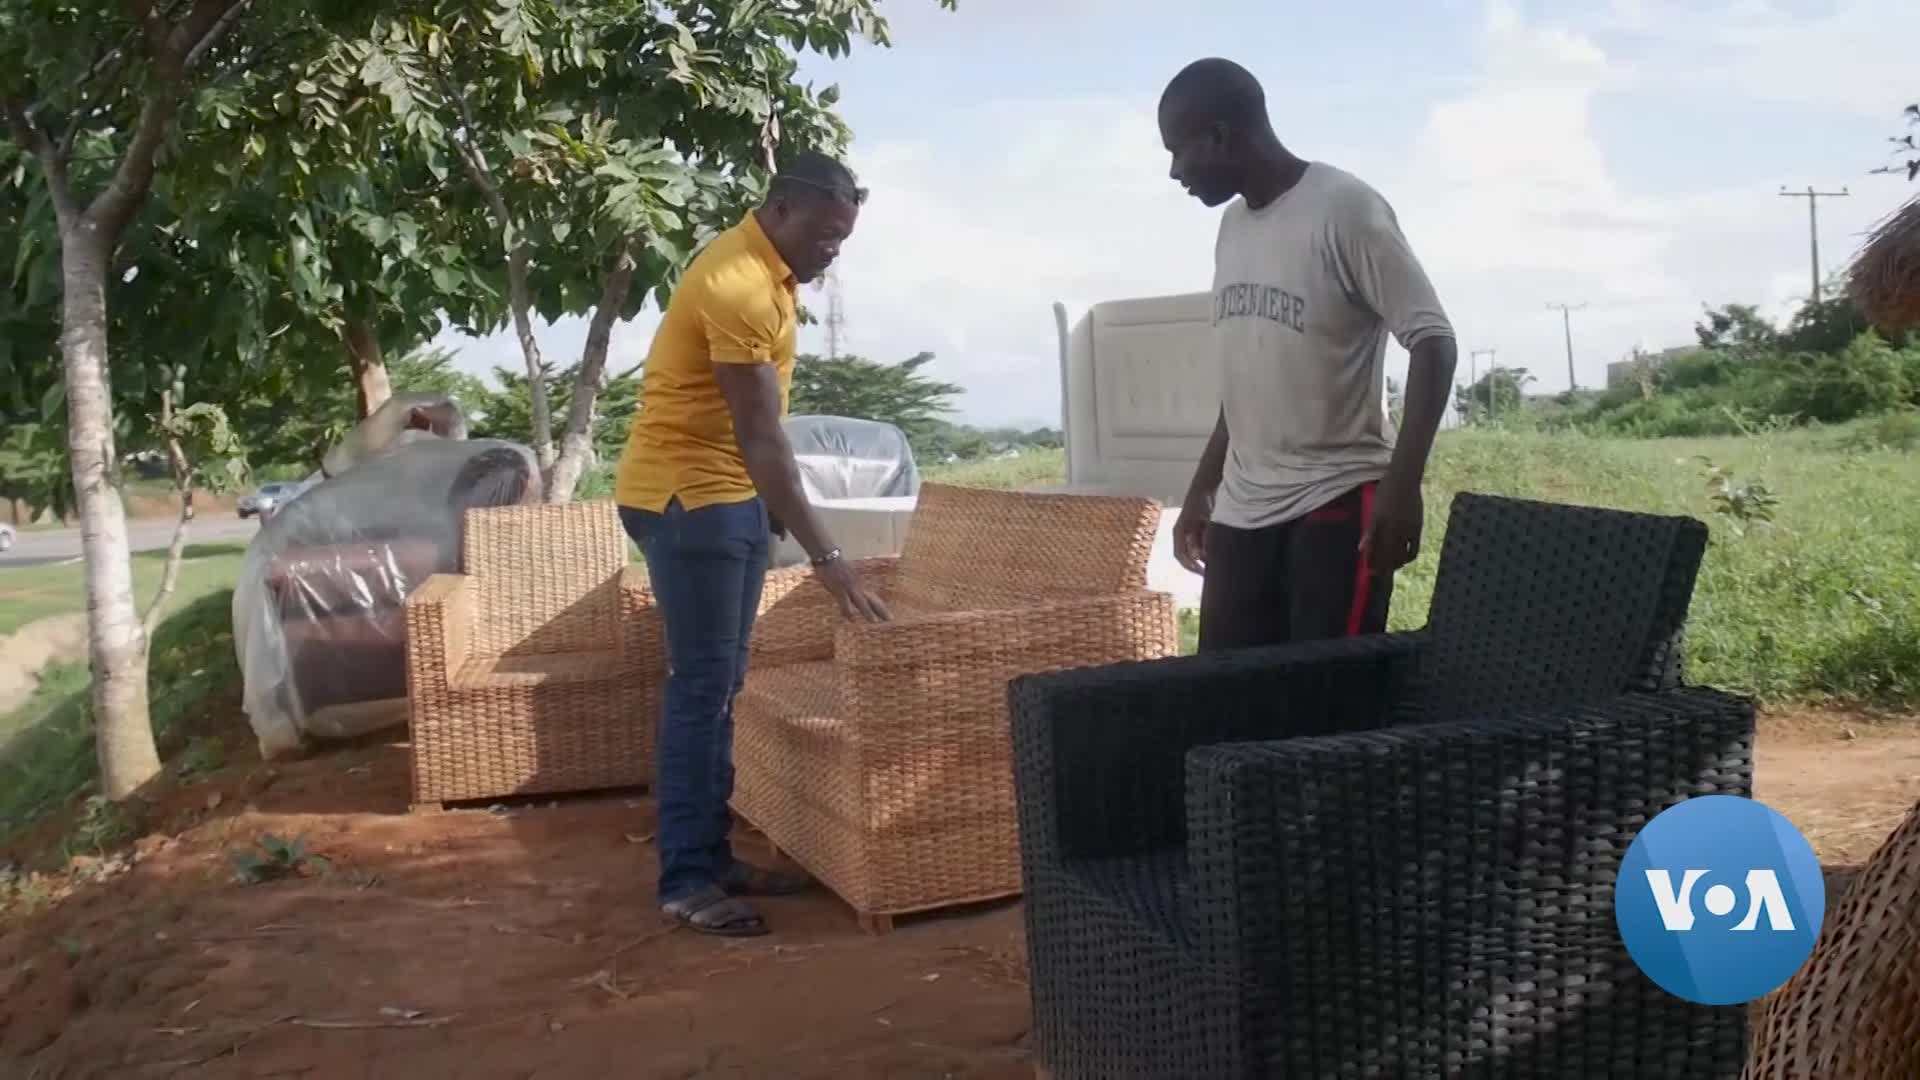 Nigerian Government Ban on Imported Furniture Boosts Local Industry - VOA News